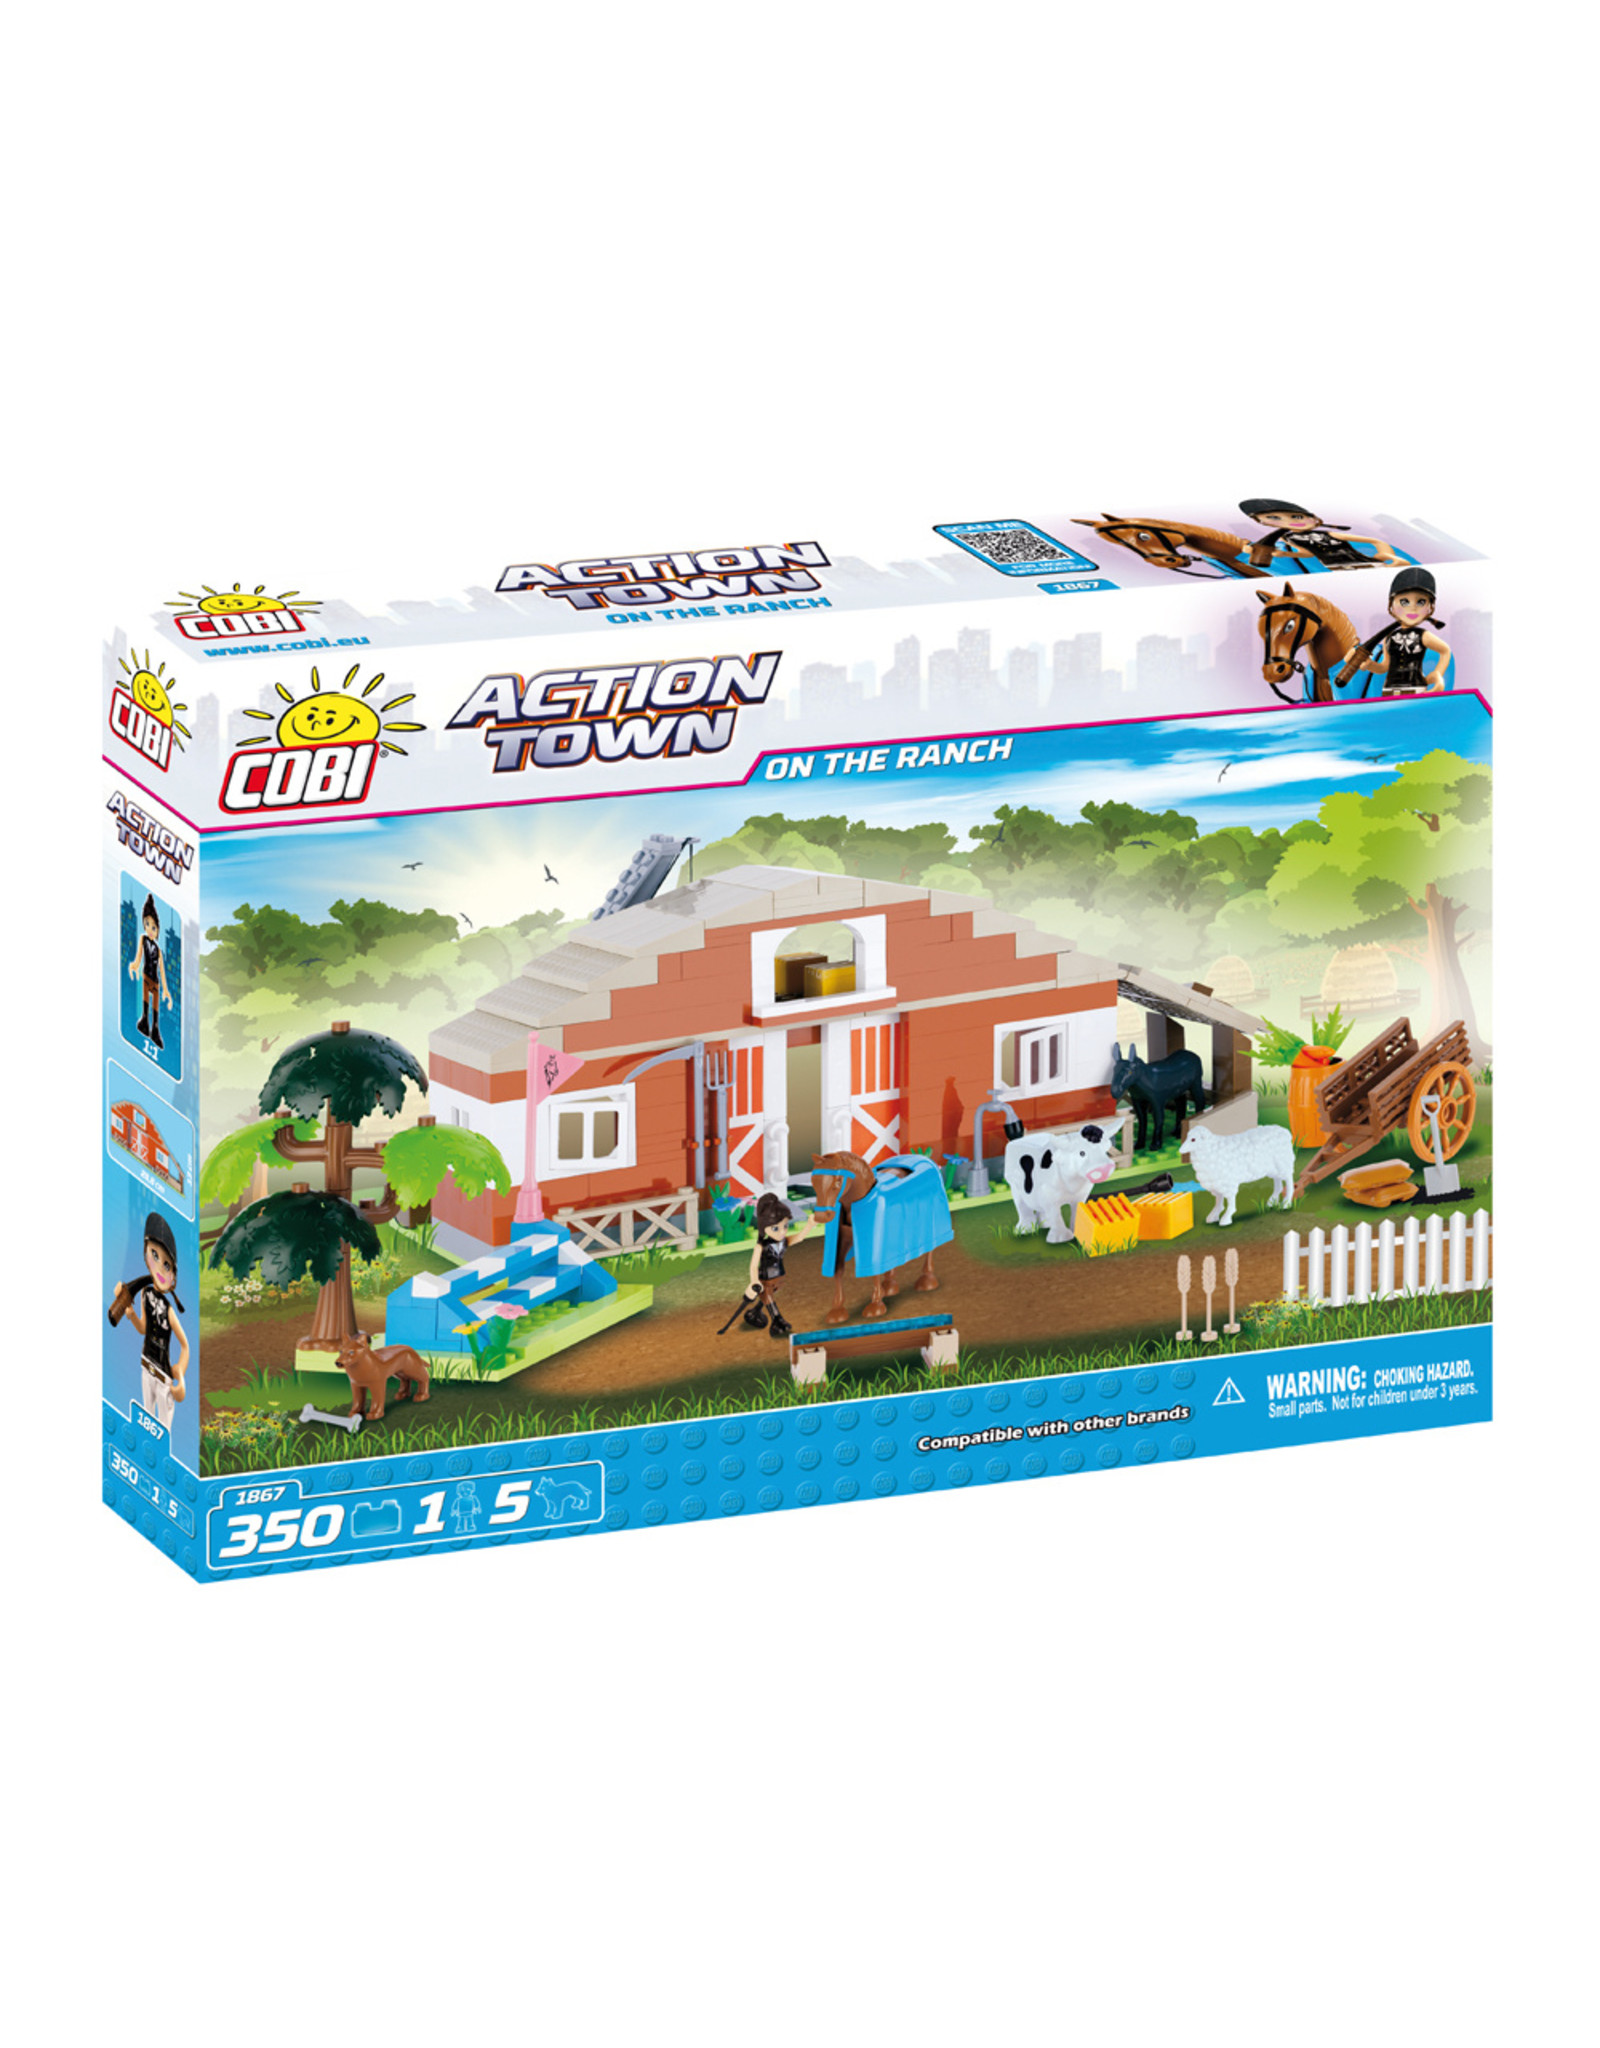 COBI COBI Action Town 1867 - on the Ranch